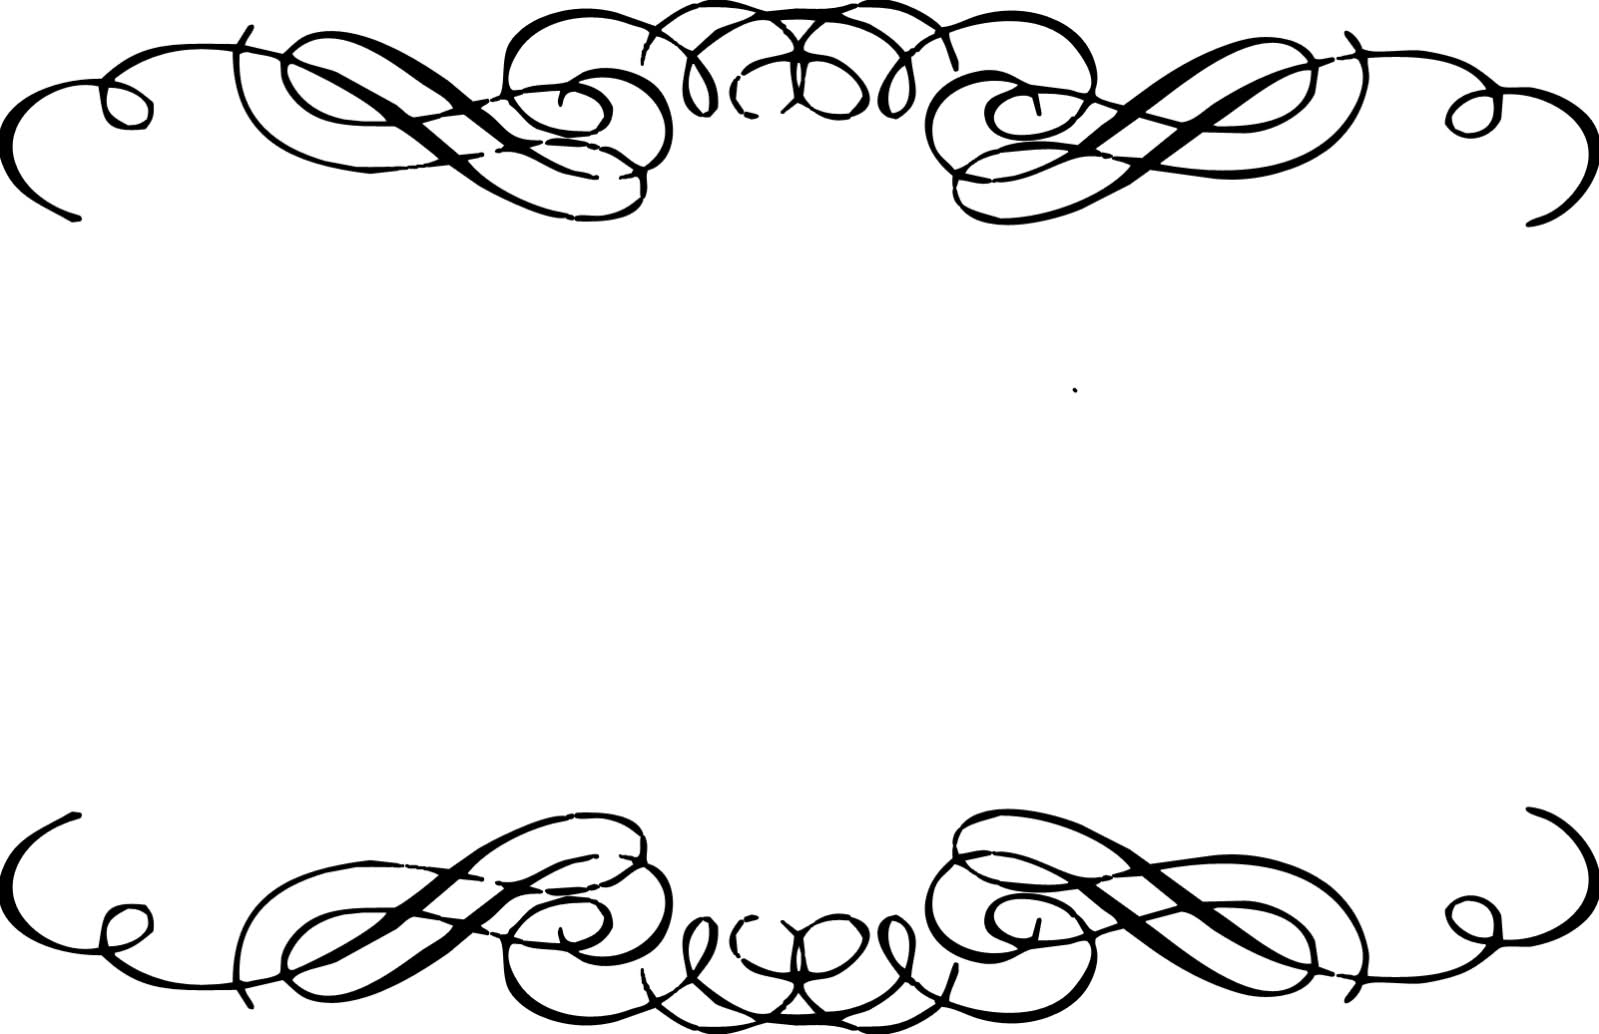 Funeral clipart accent. Scrollwork free clip art